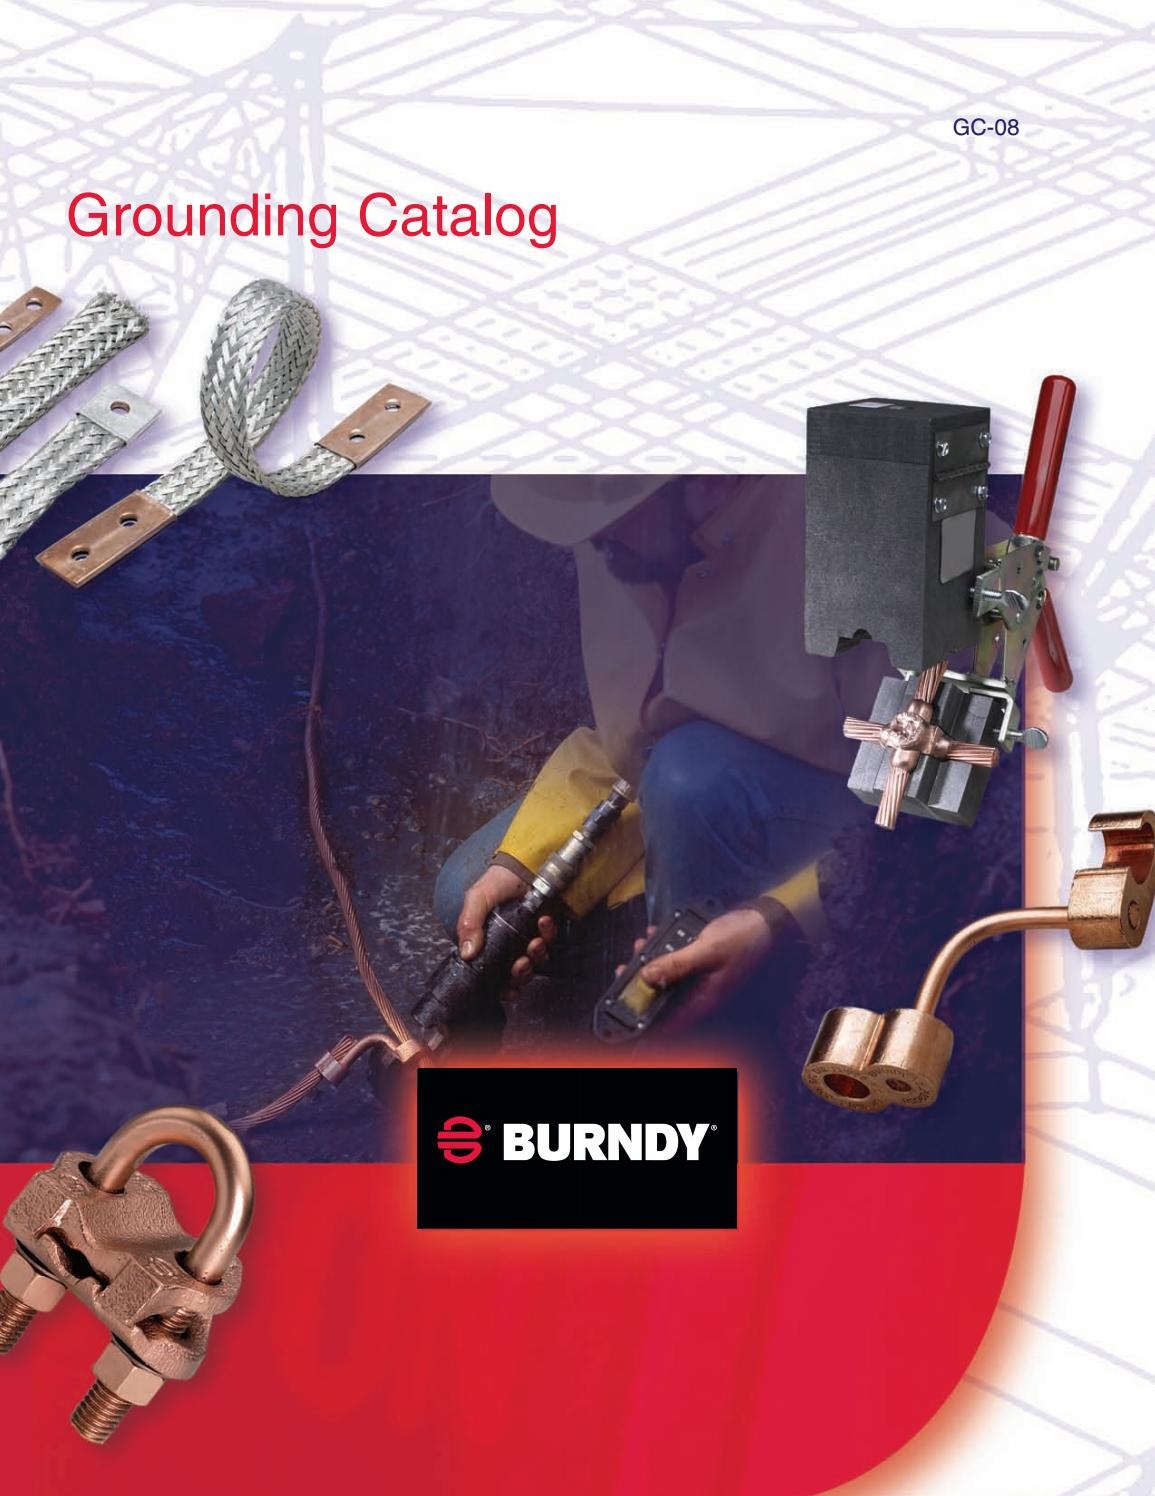 4 AWG Cable Tap 3//4 Groung Rod Burndy B-2160 BCR-3 Type Horizontal Through Cable to Ground Rod Mold Splice